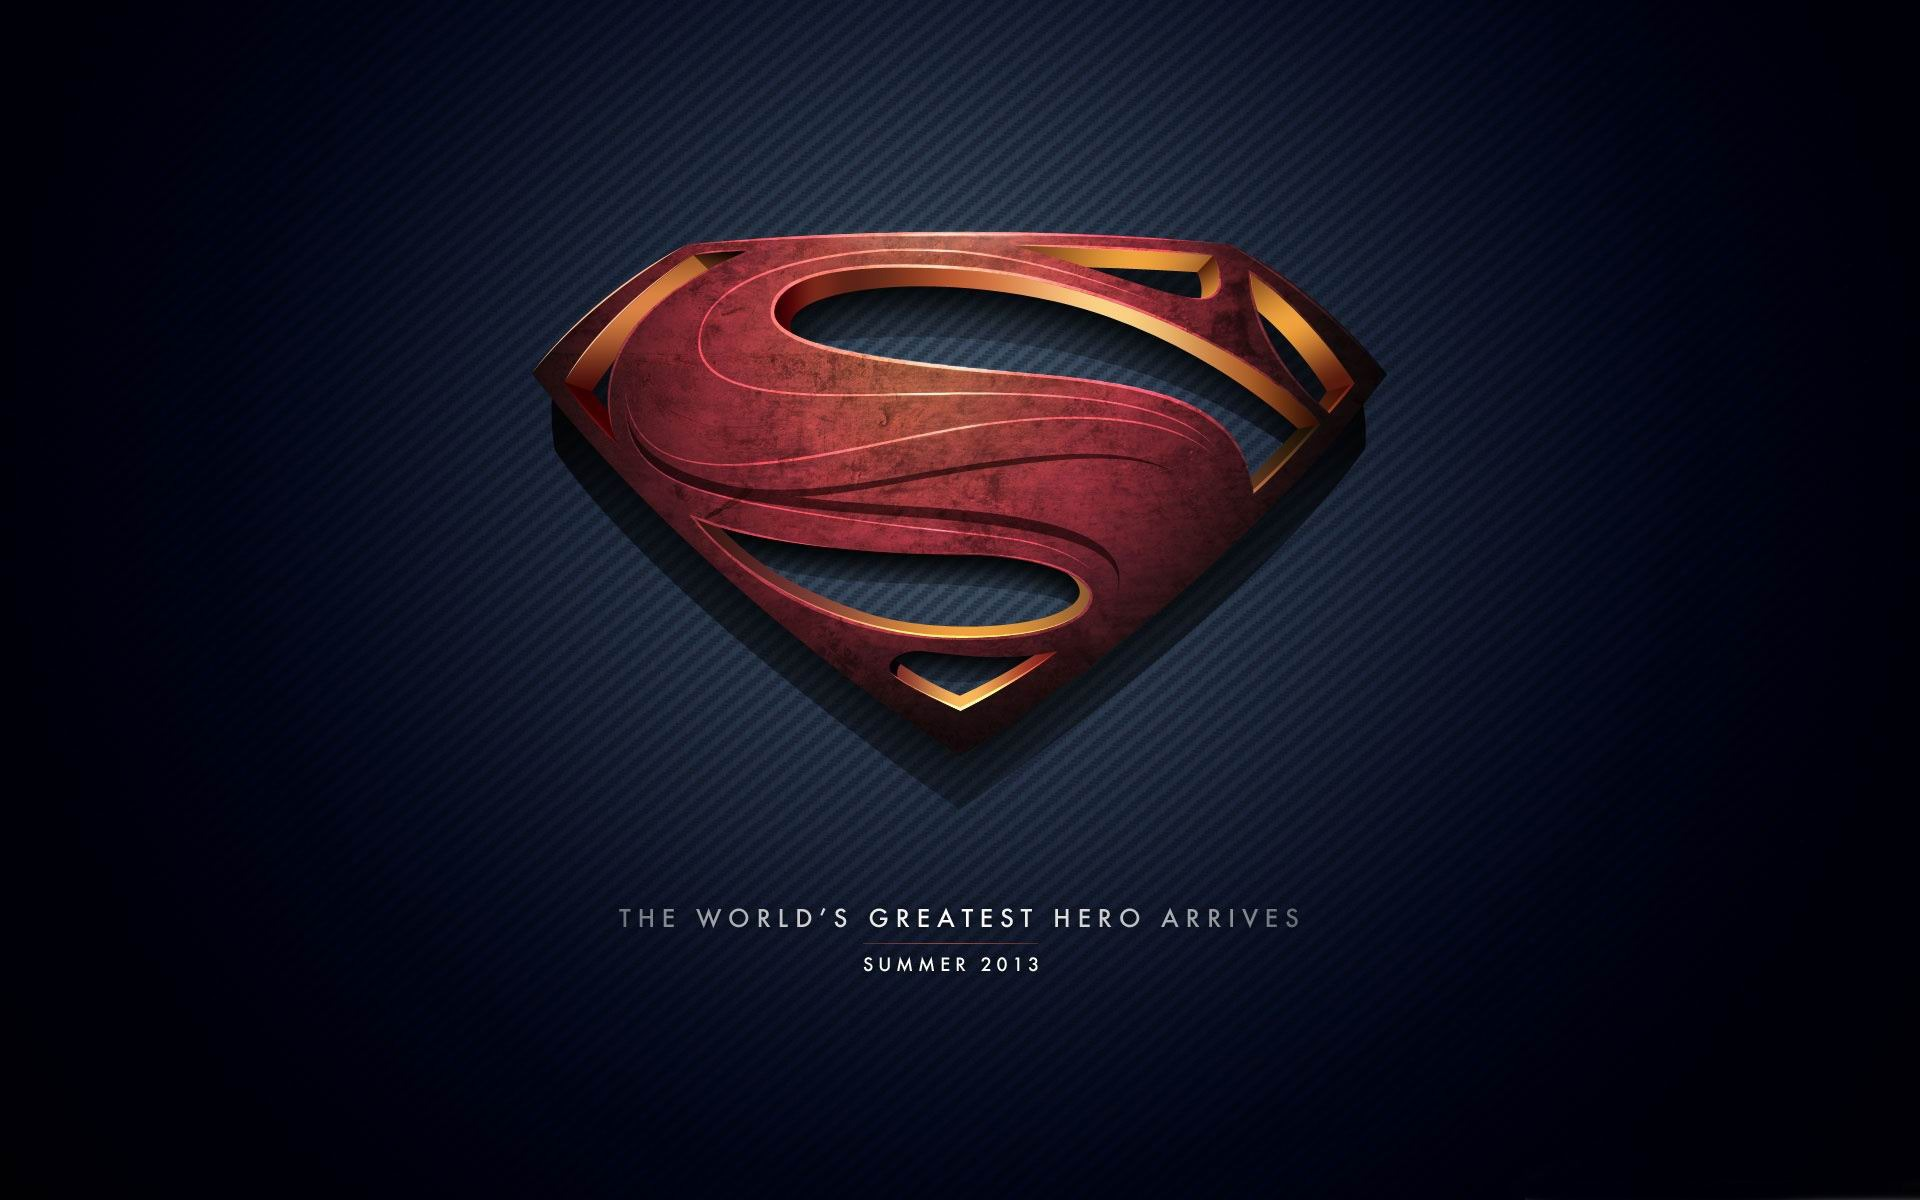 Superman Man Of Steel 2013 Movie HD Wallpaper 05   1920x1200 wallpaper 1920x1200